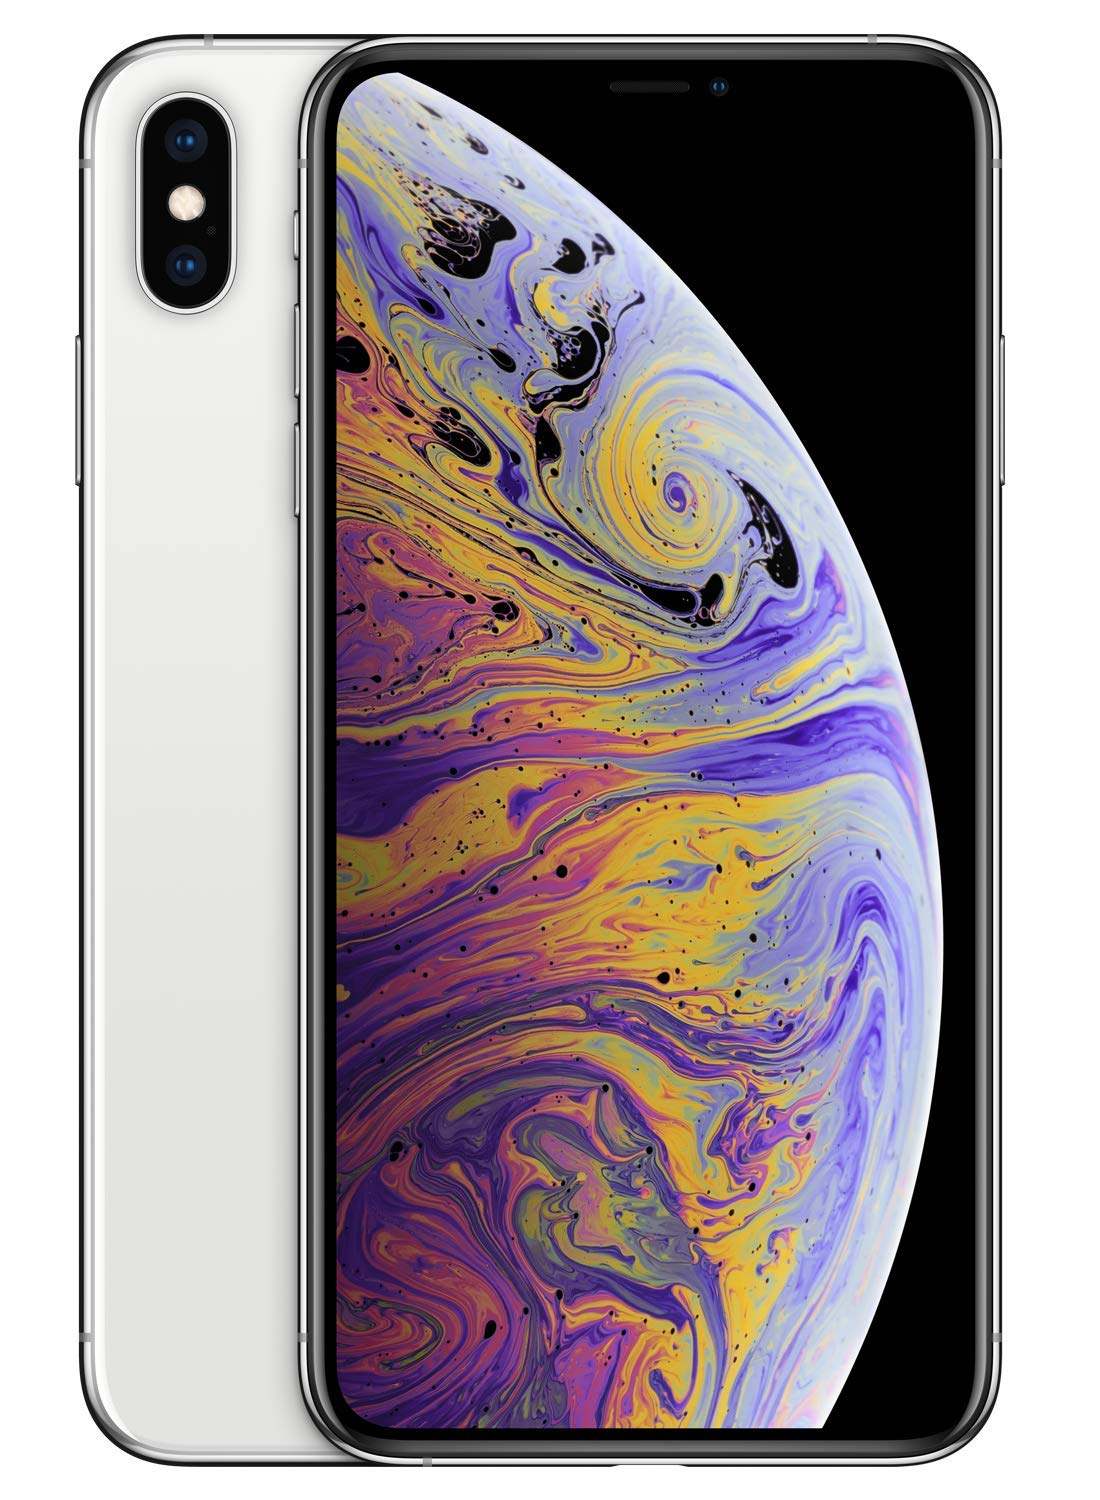 Apple iPhone XS Max 256GB (серебристый) 2 симкарты